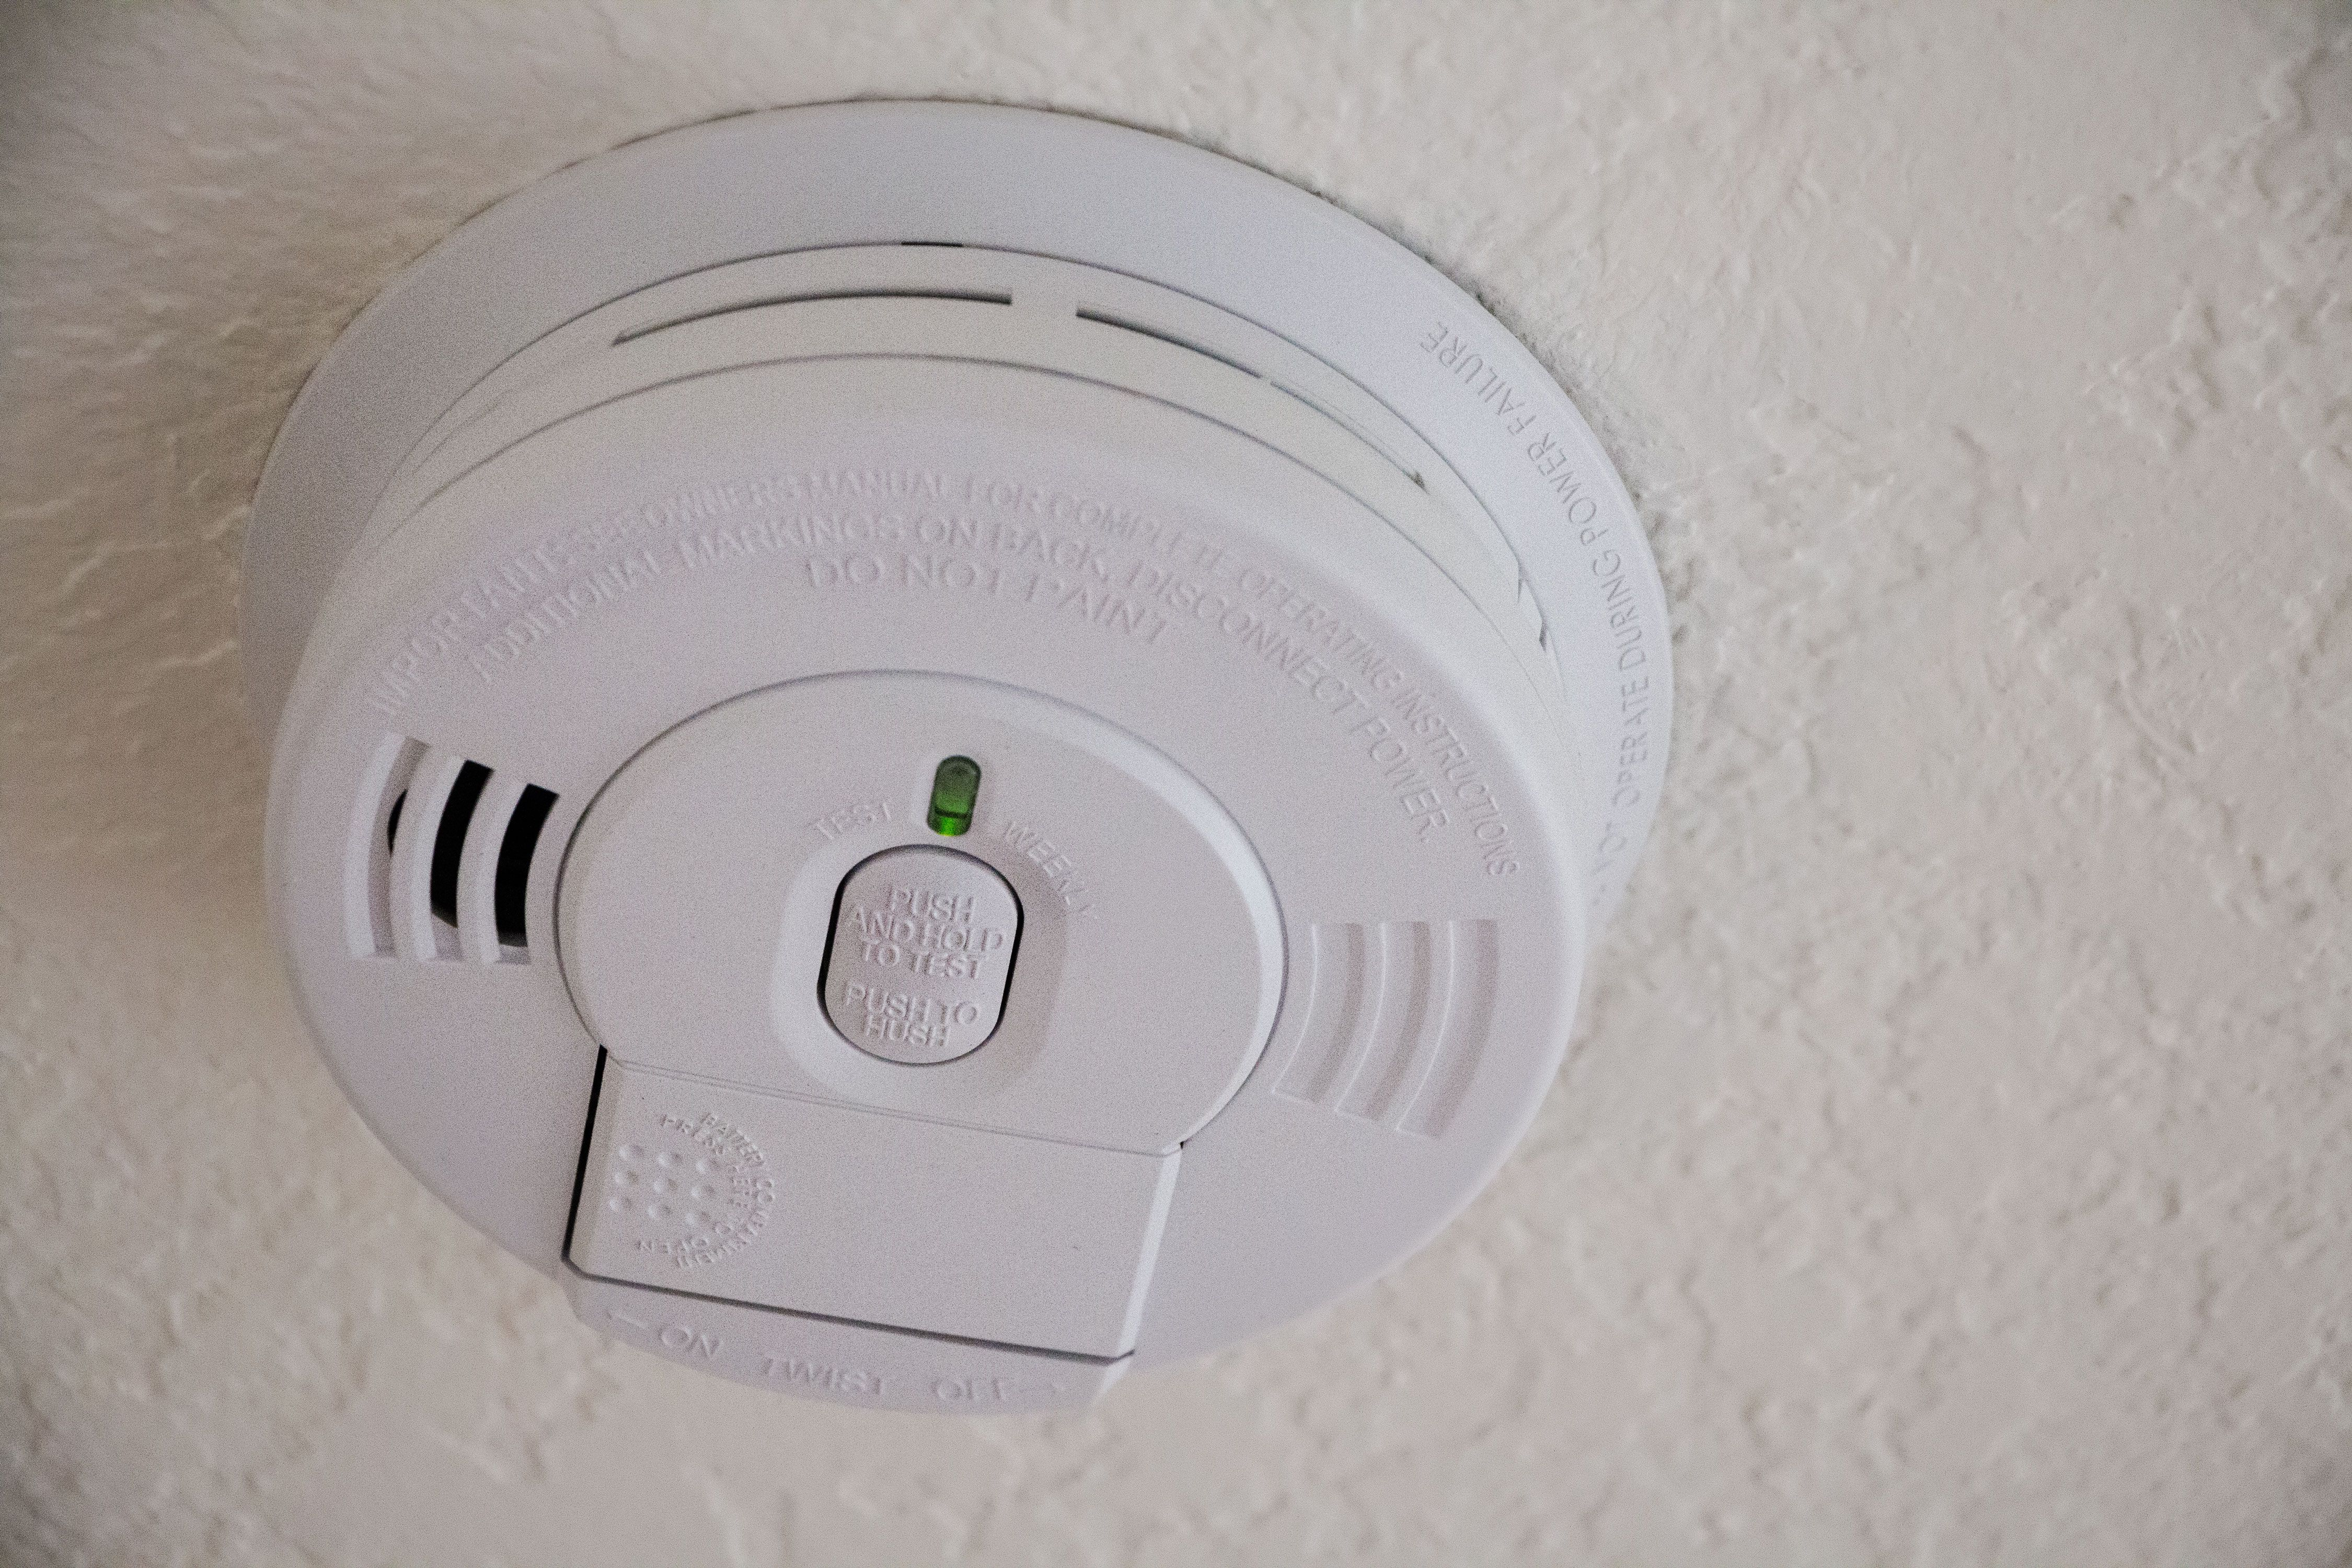 How To Stop A Smoke Alarm From Beeping Smoke Alarms Emergency Plan Smoke Detector